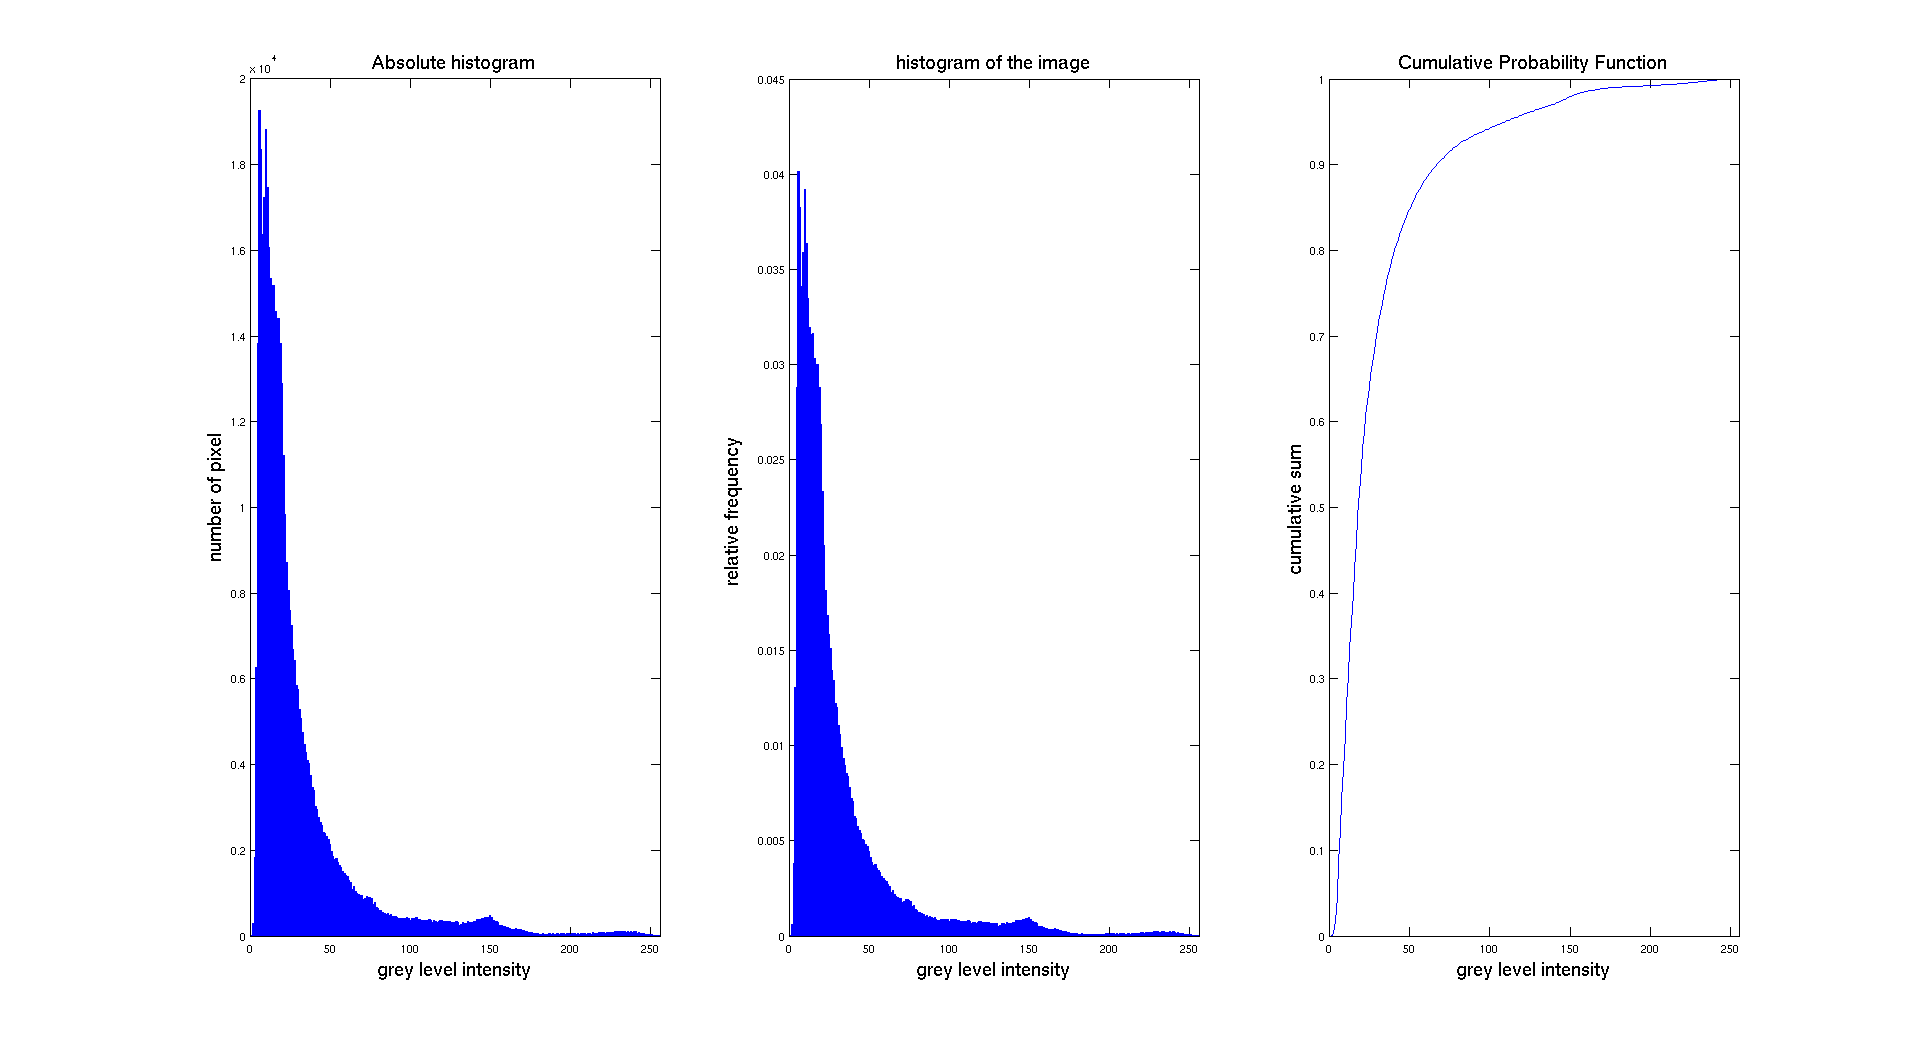 Conversion From Original Histogram To Normalized Histogram And The  Associated Cumulative Probability Function